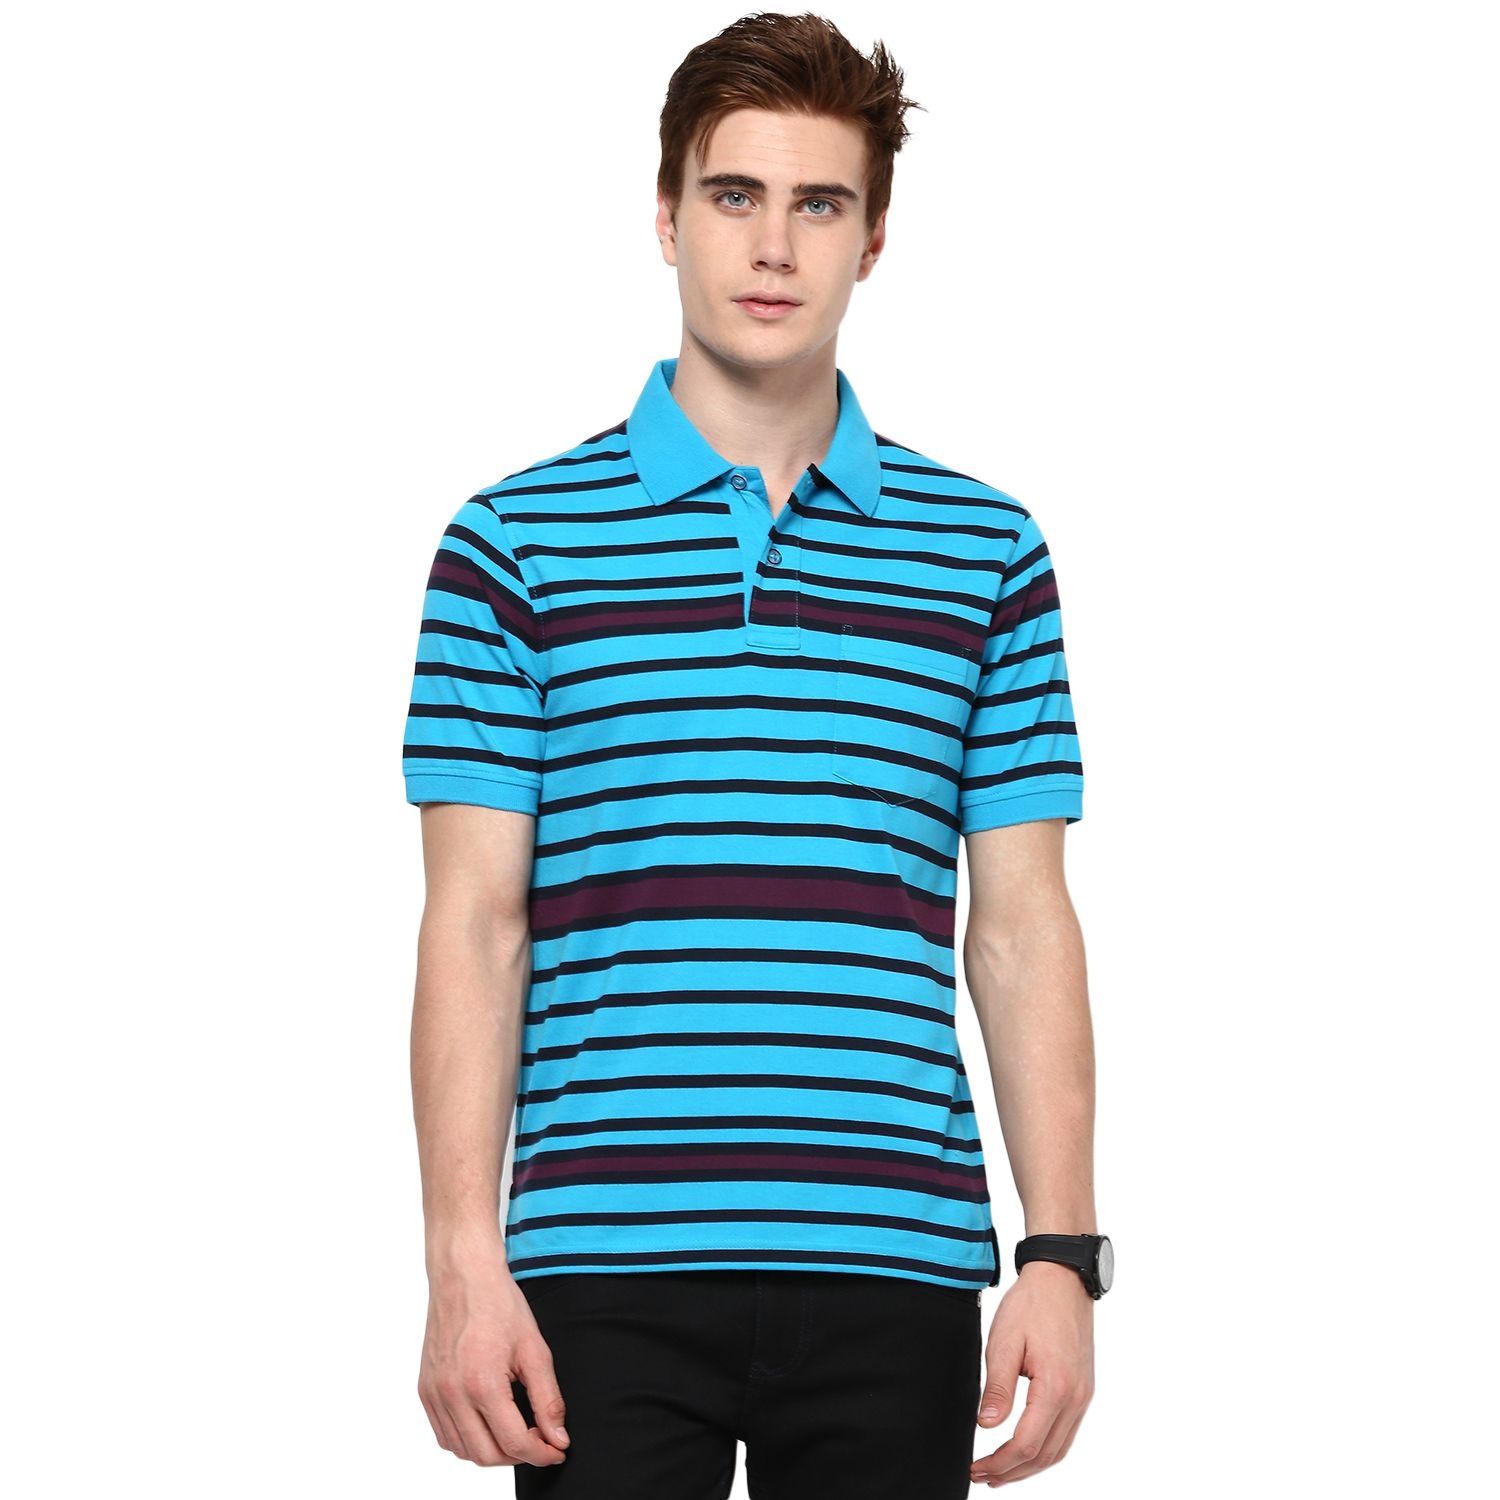 8602e84ff3618 Royal Blue, Black and Navy Blue Striped Rugby MUDO Polo T-Shirts ...